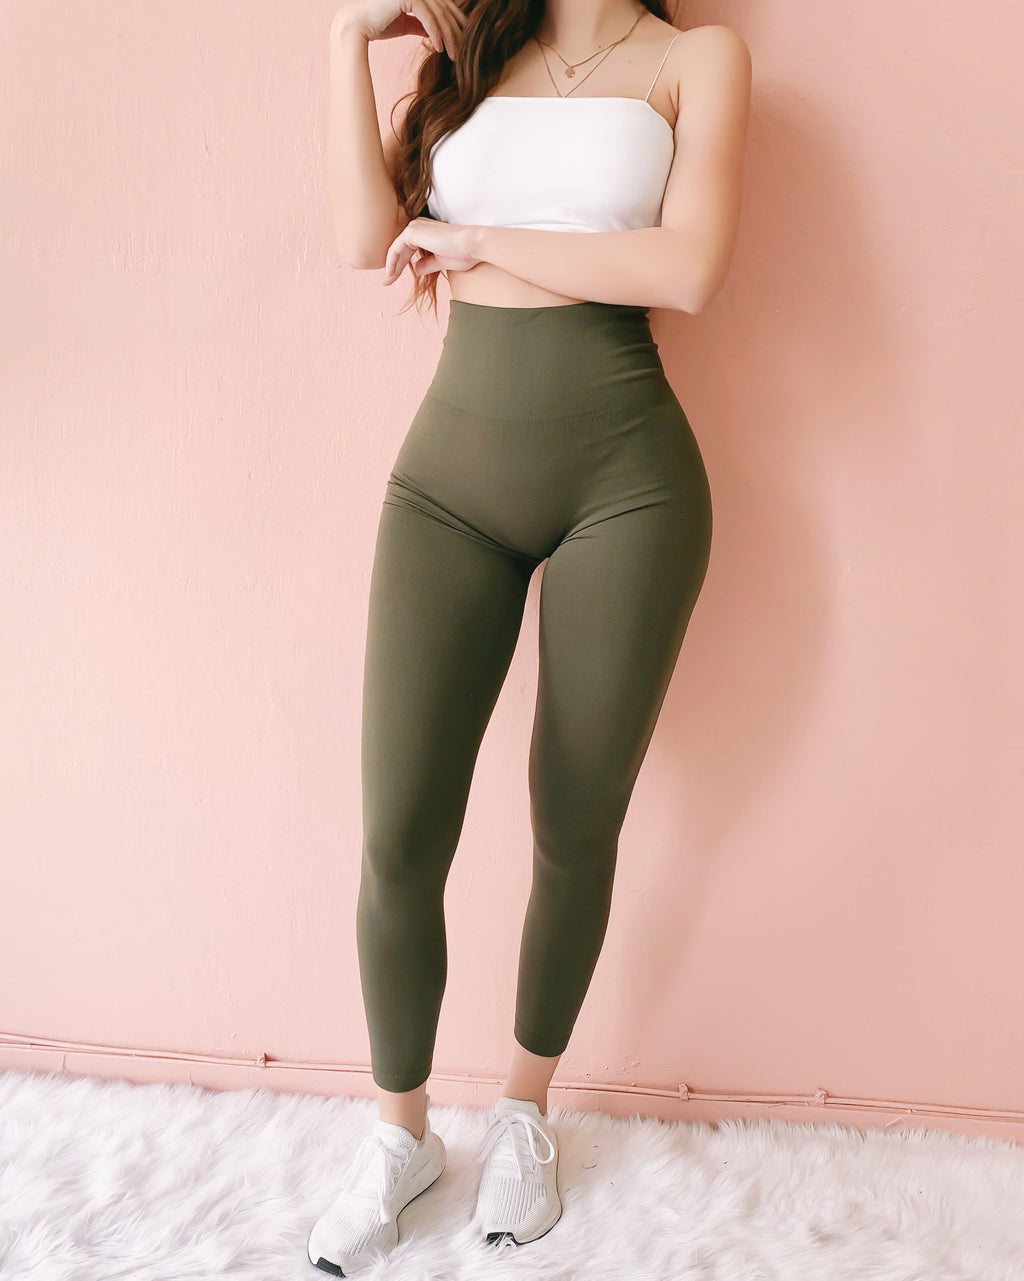 RESTOCKED! FIREPLACE FLEECE HIGH WAIST LEGGINGS (OLIVE)